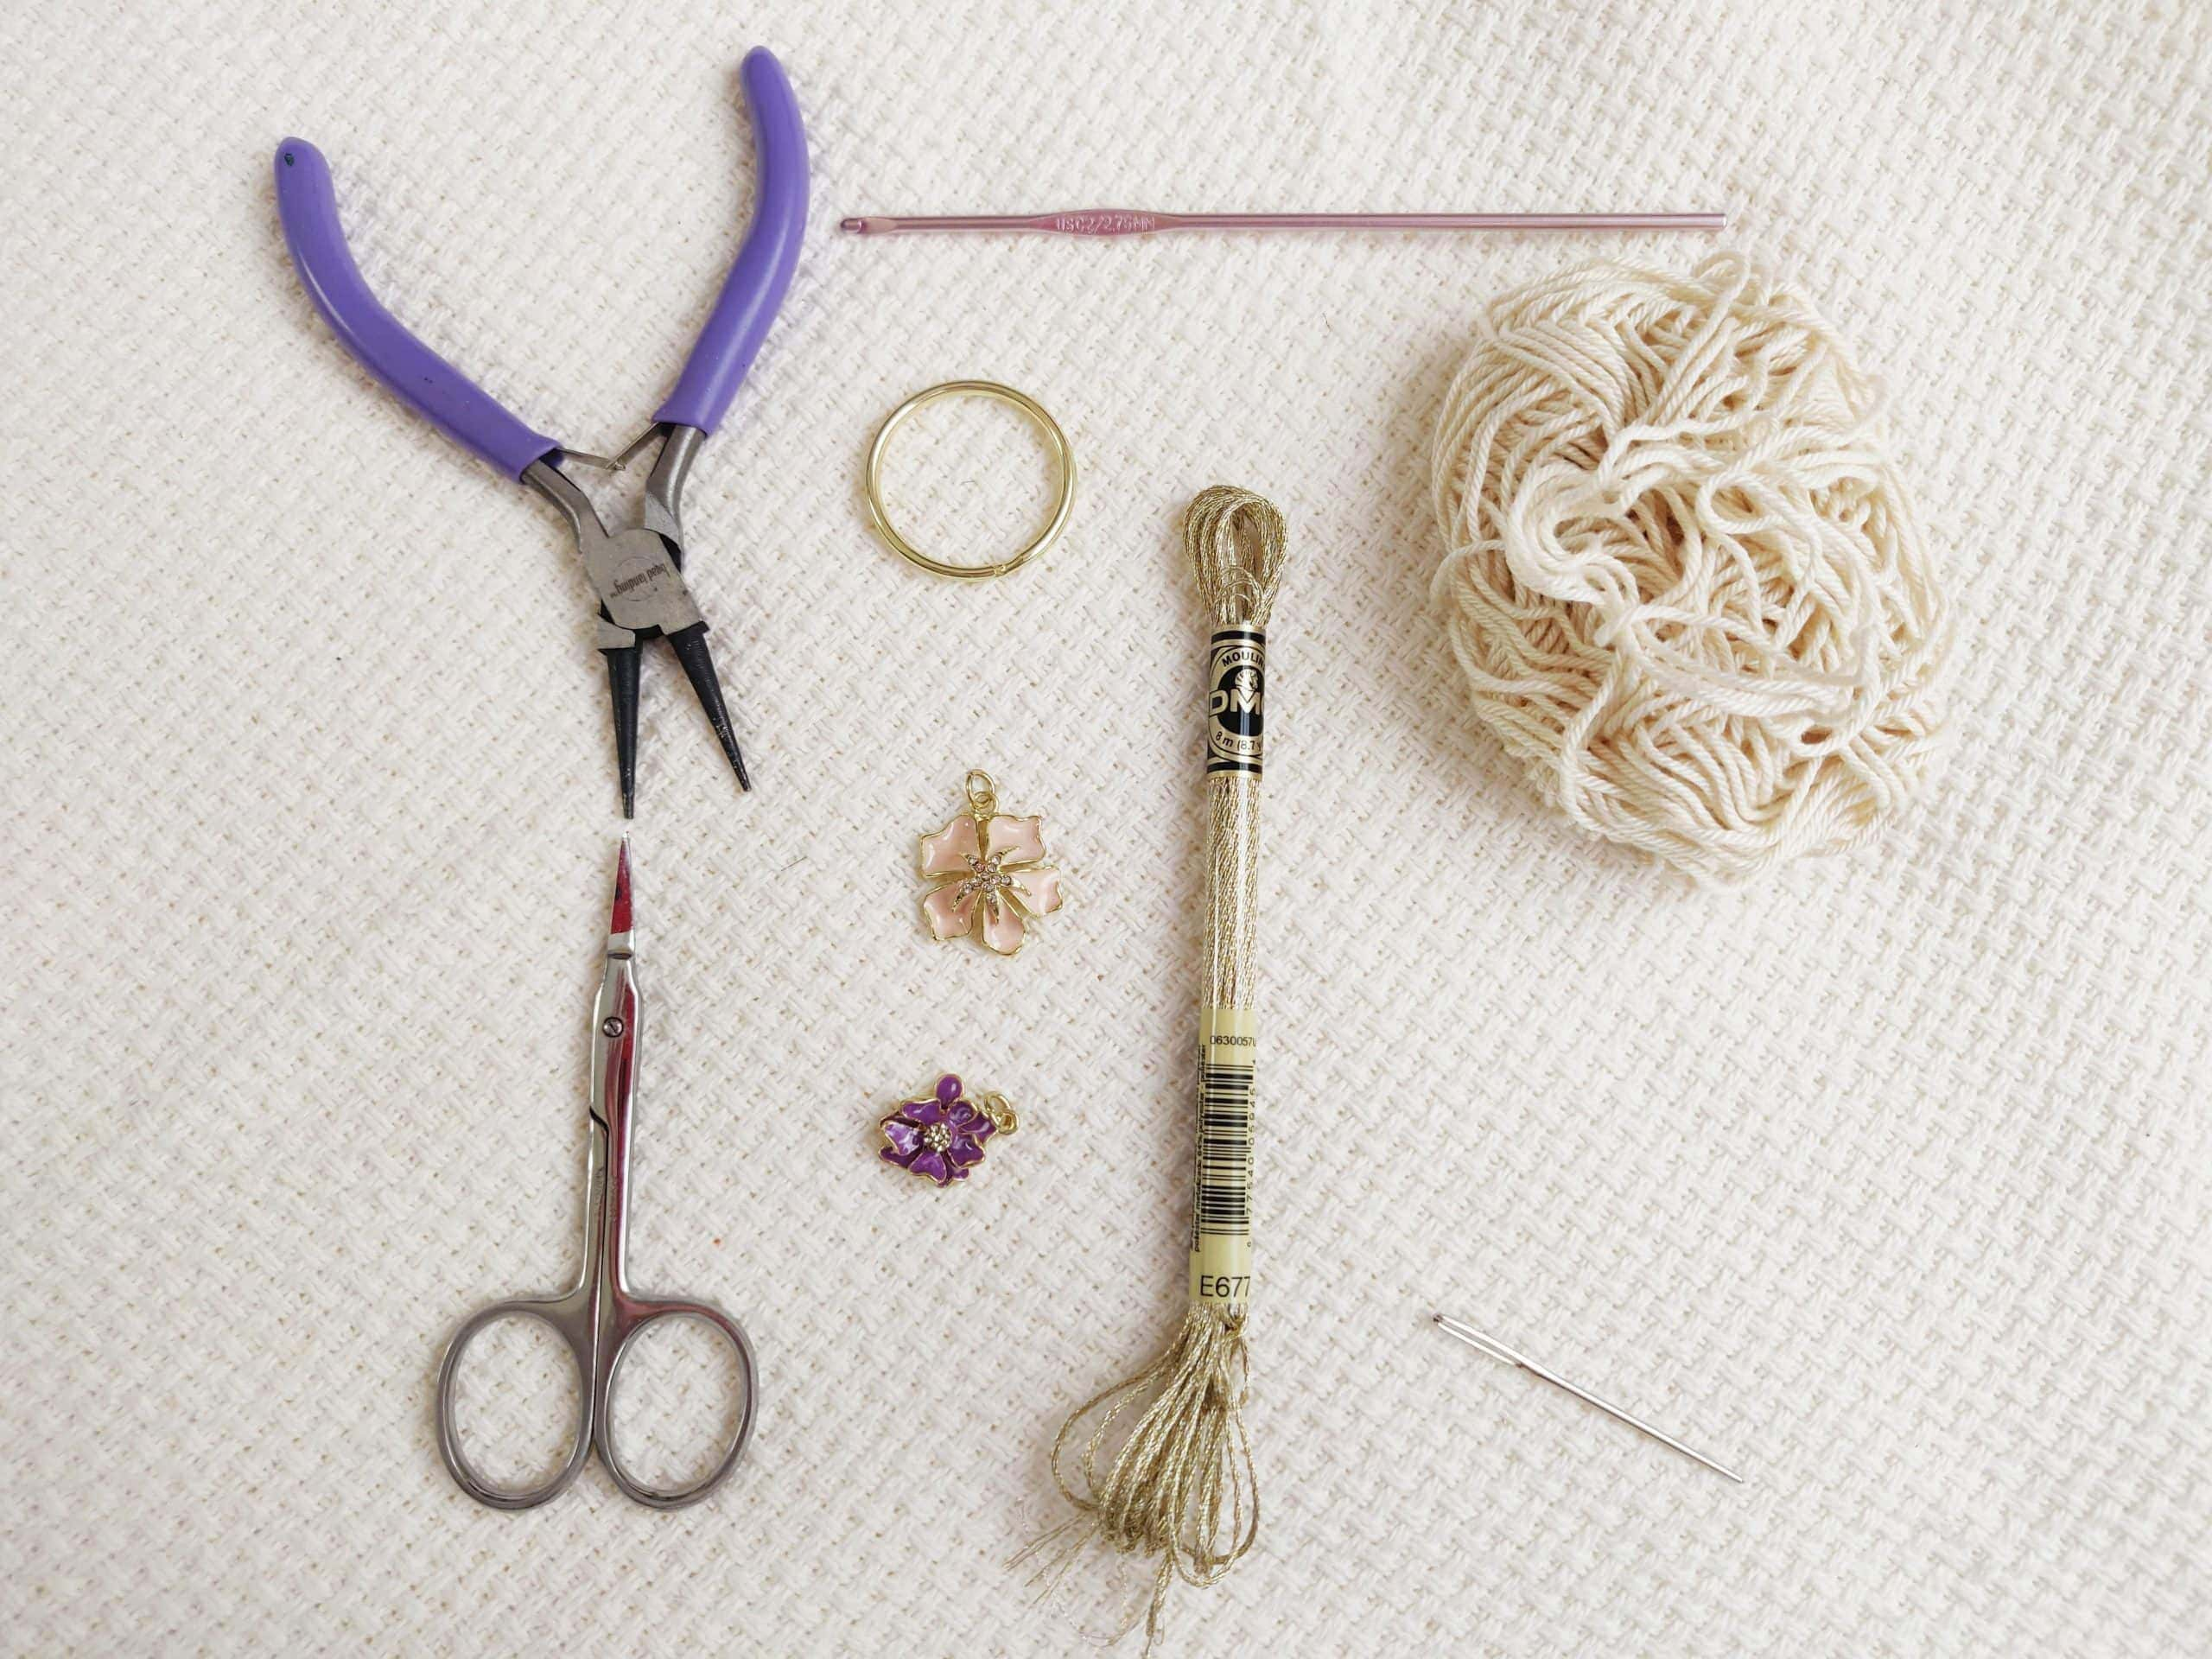 tools and string